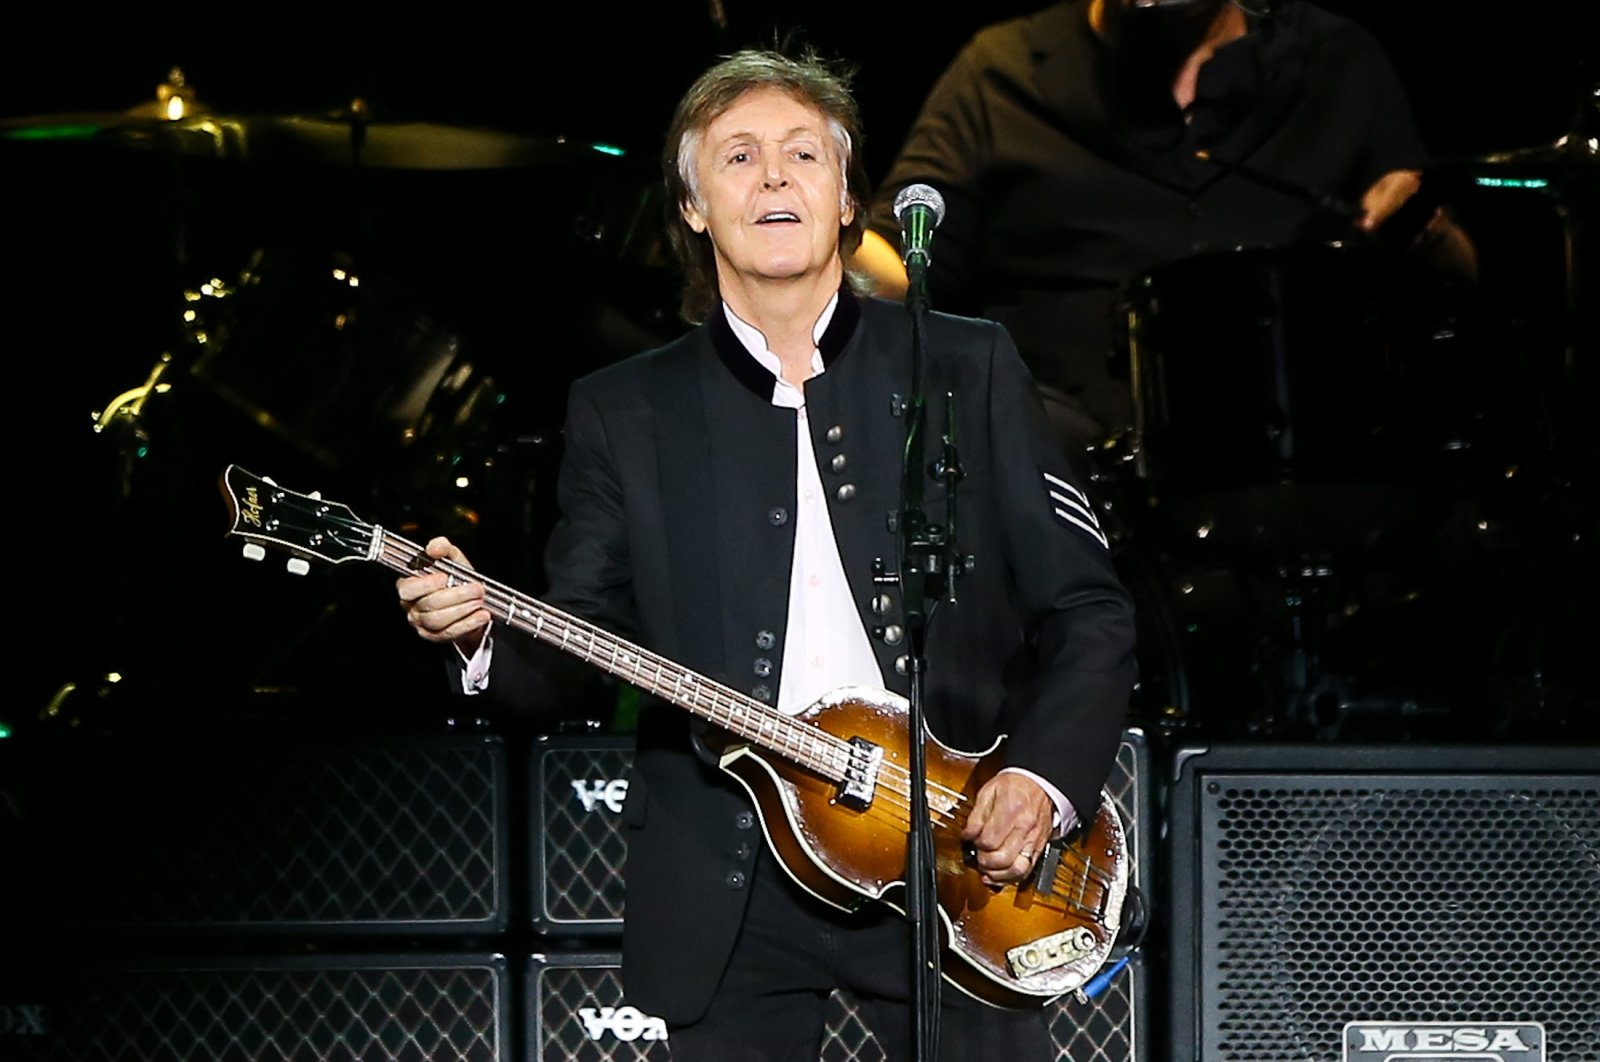 Singer Paul McCartney performs onstage at NYCB Live on Sept. 27, 2017, in Uniondale, New York, U.S. (Shutterstock Photo)